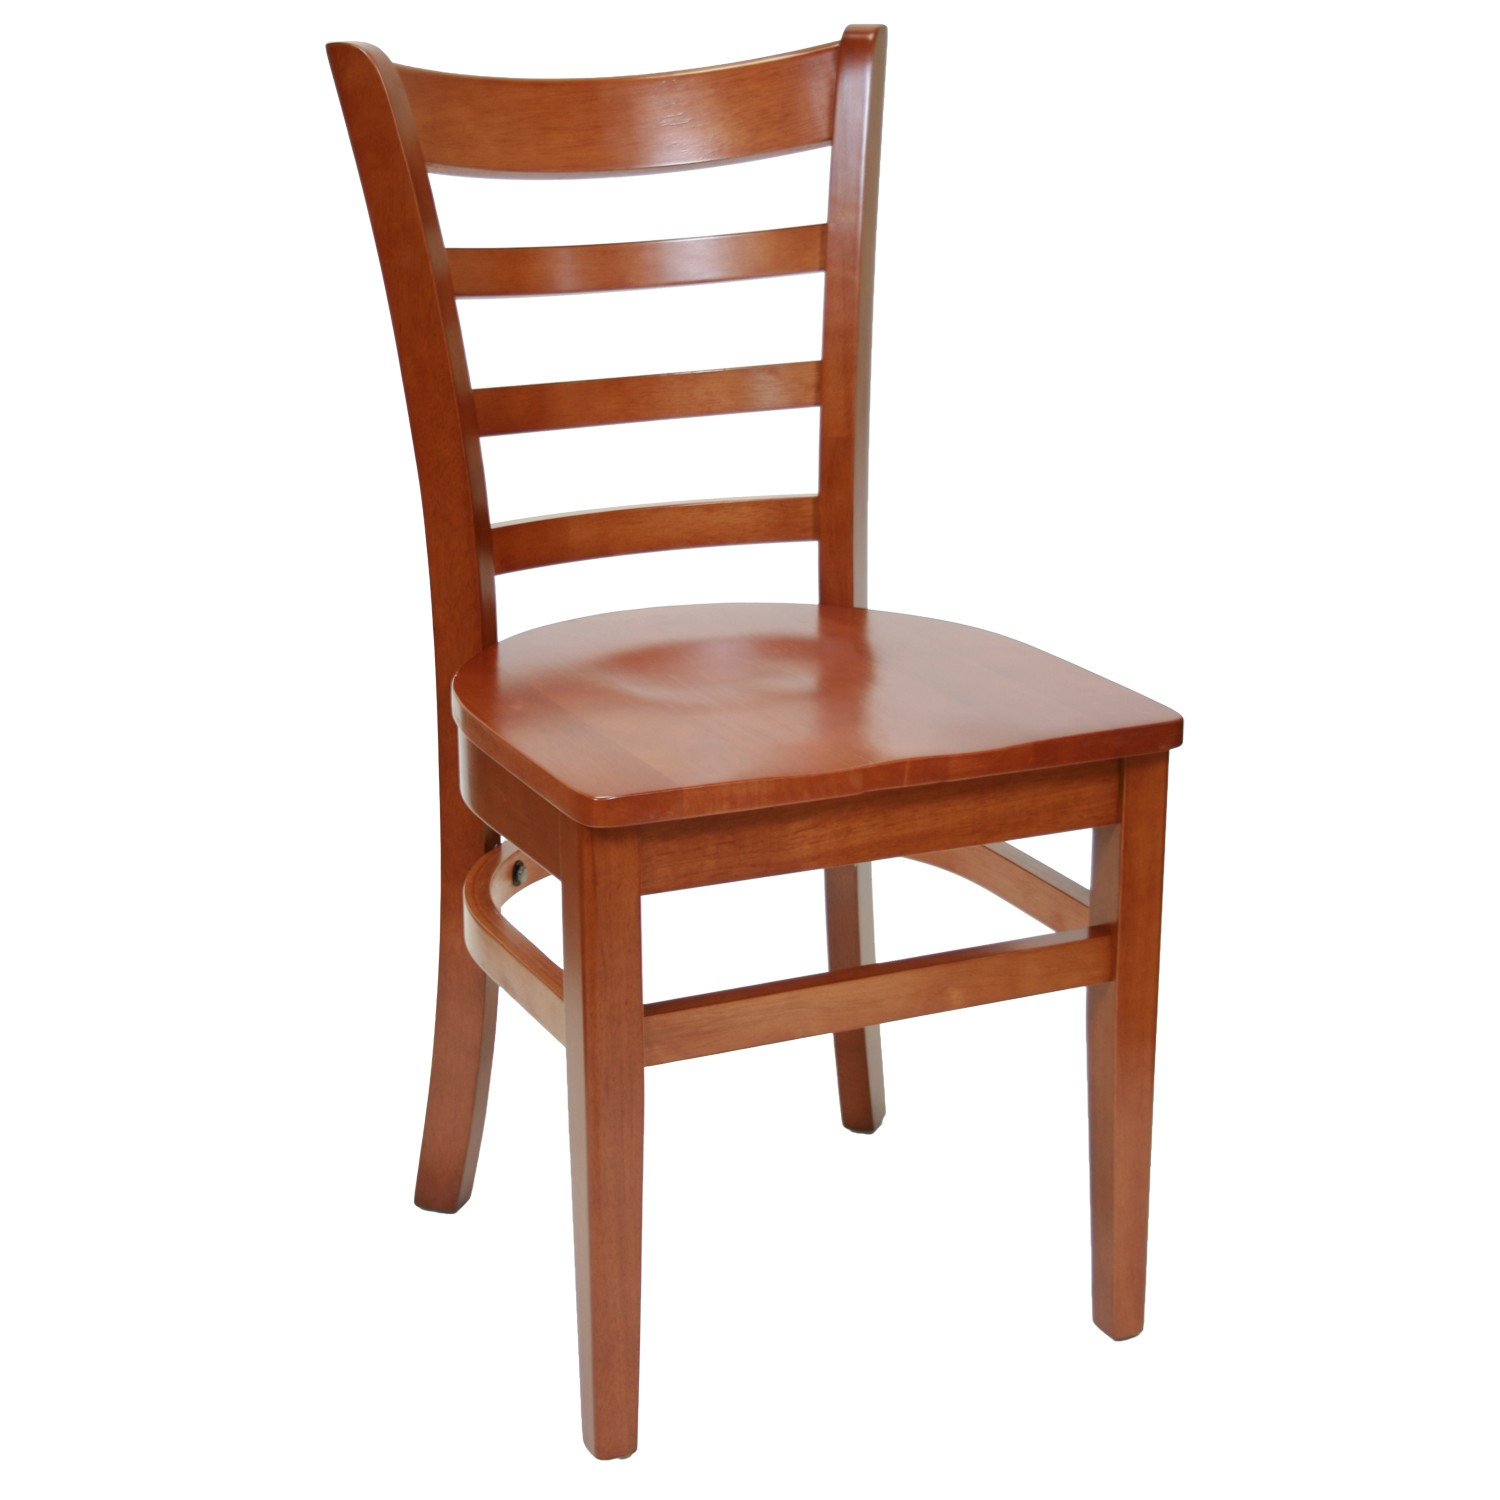 Where Can Ladder back Chairs Be Used The Basic Woodworking : walnut wood Ladder back Chairs from thebasicwoodworking.com size 1500 x 1500 jpeg 122kB